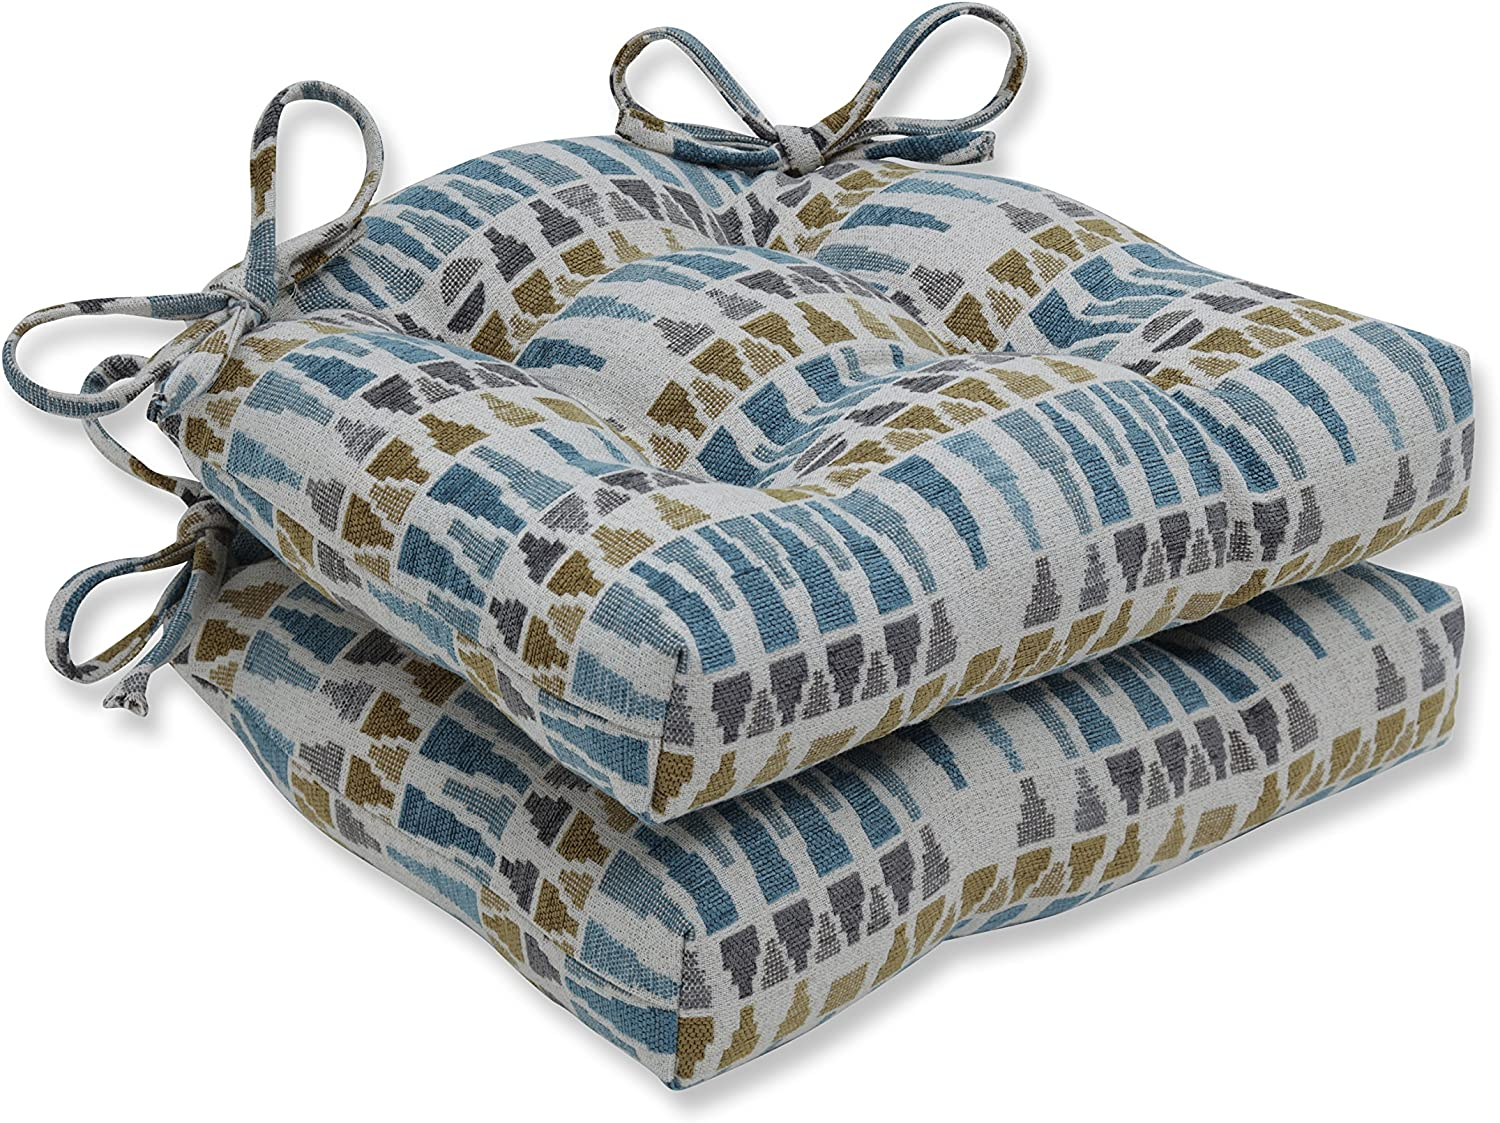 Pillow Perfect Blue Sky Gold Gray Chair Pad, Reversible, 2 Piece